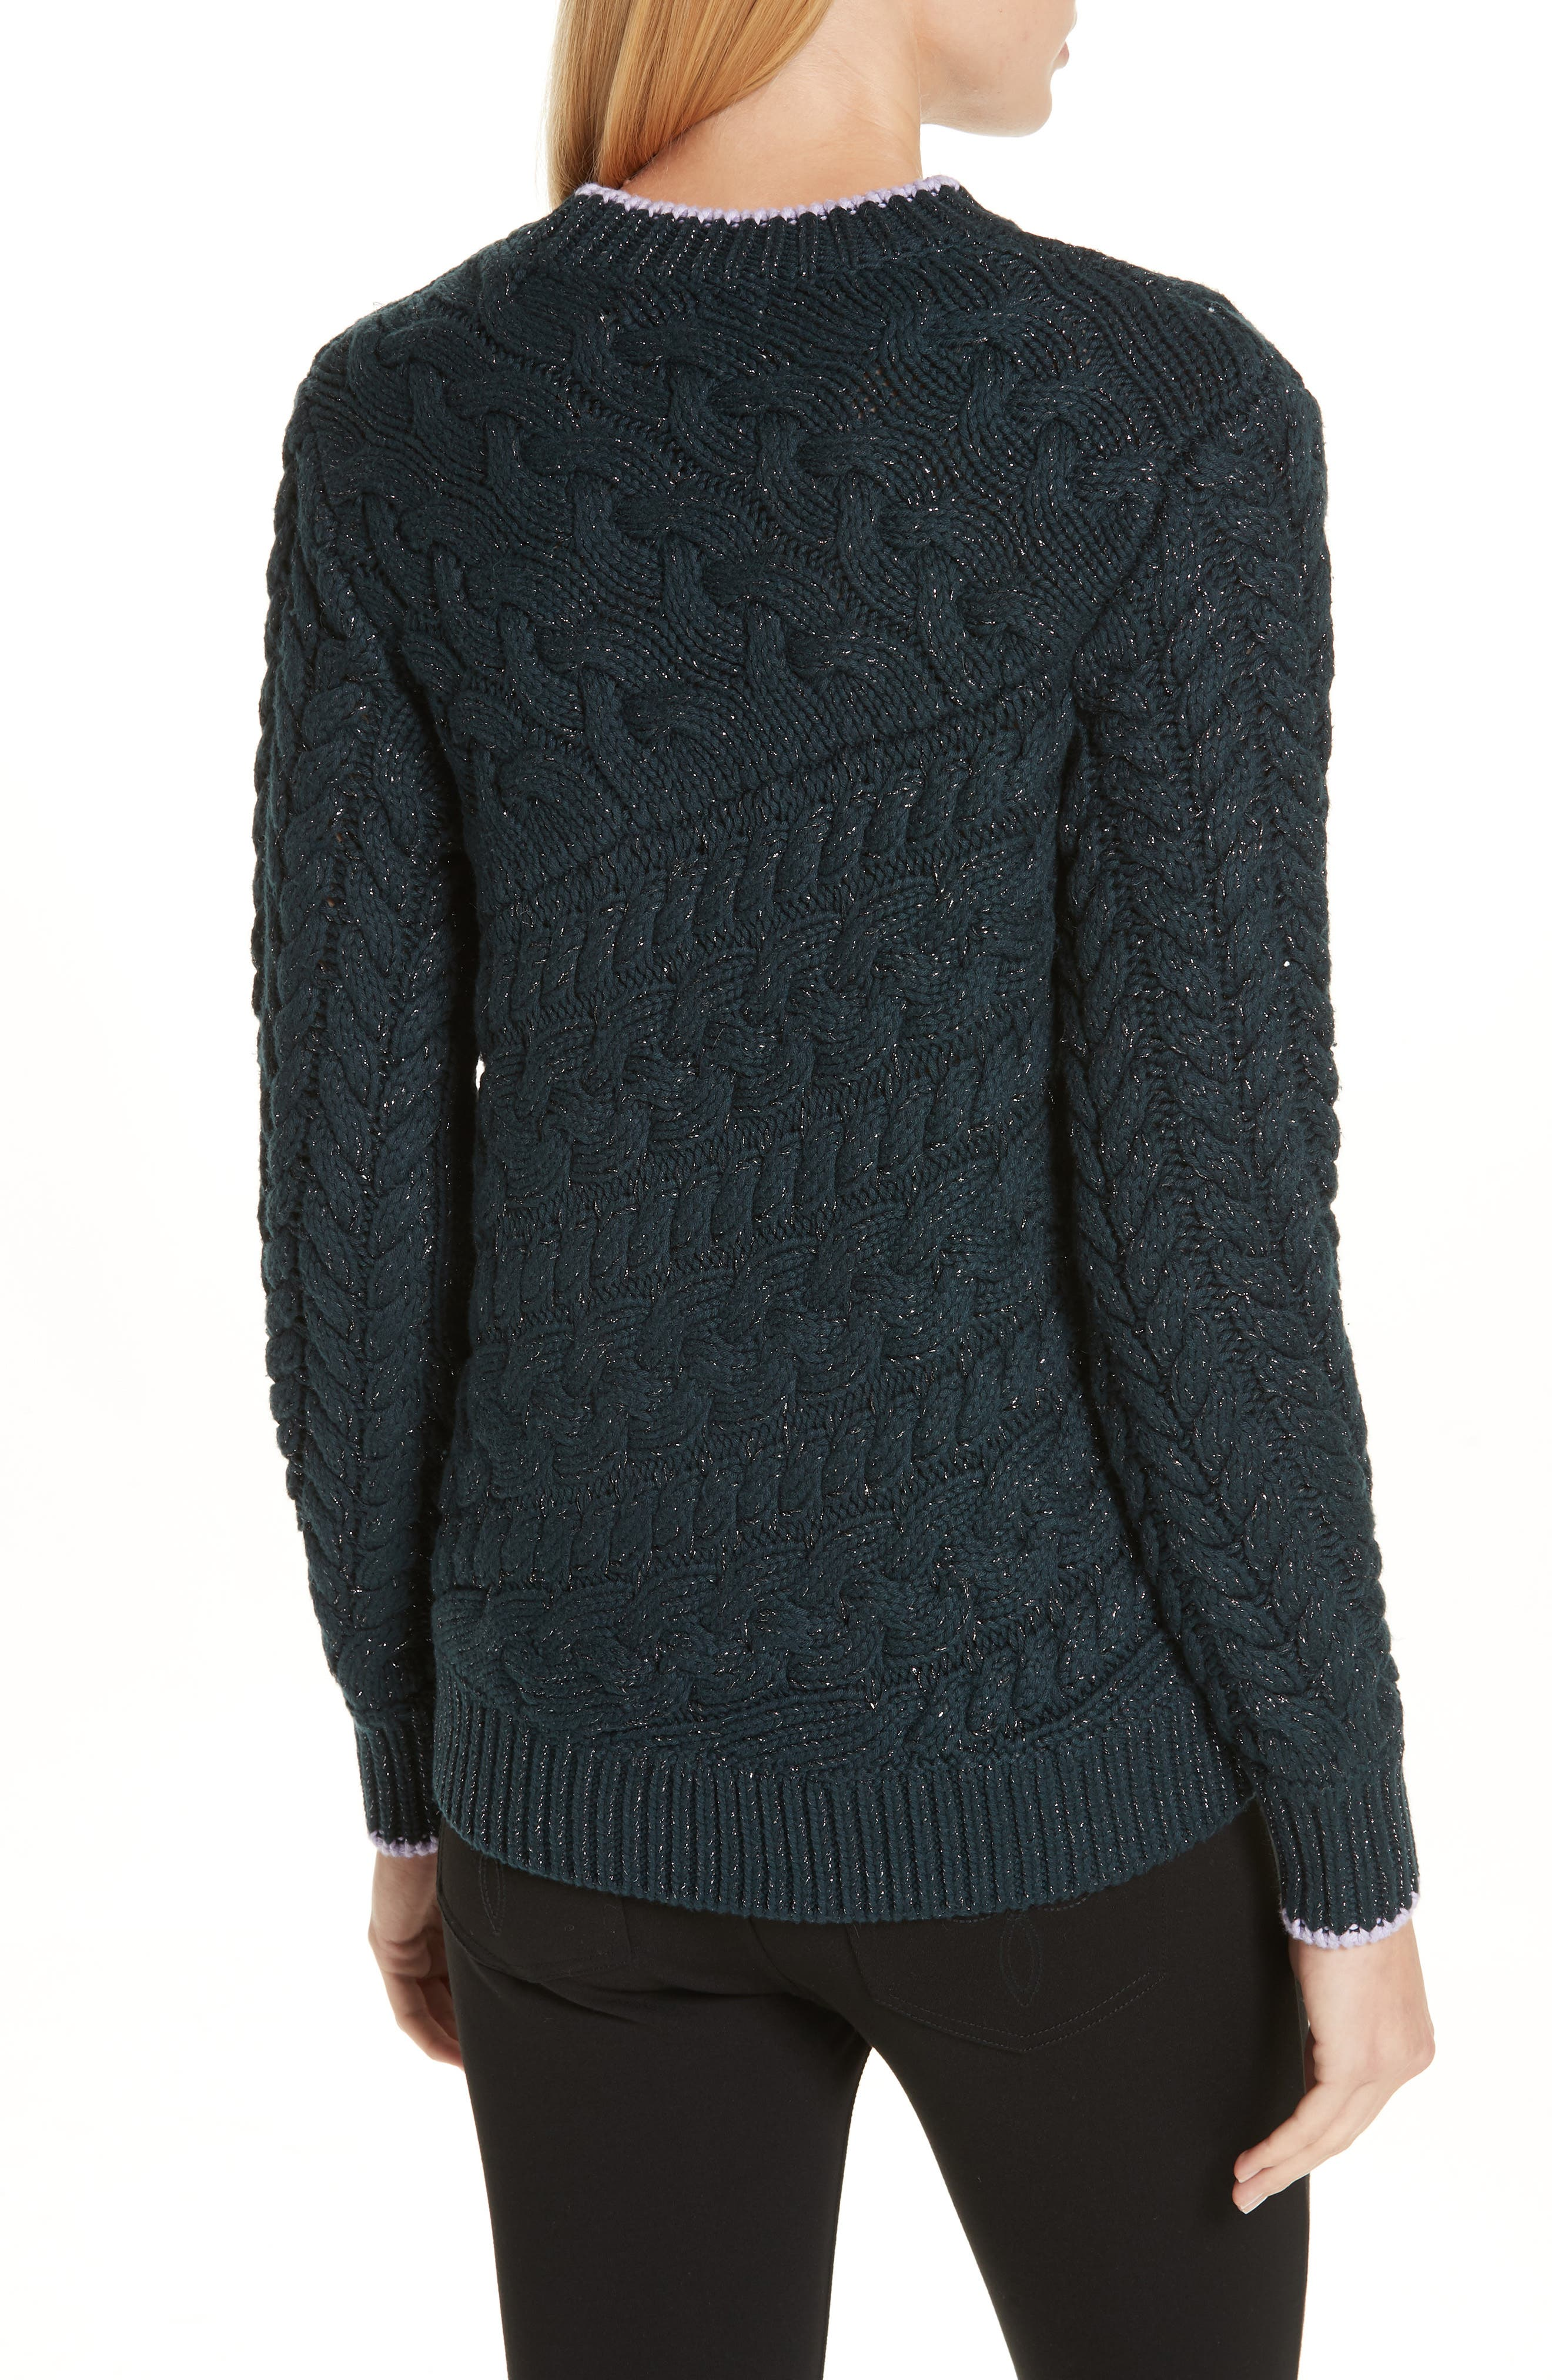 Colour by Numbers Charo Cable Knit Sweater,                             Alternate thumbnail 2, color,                             301